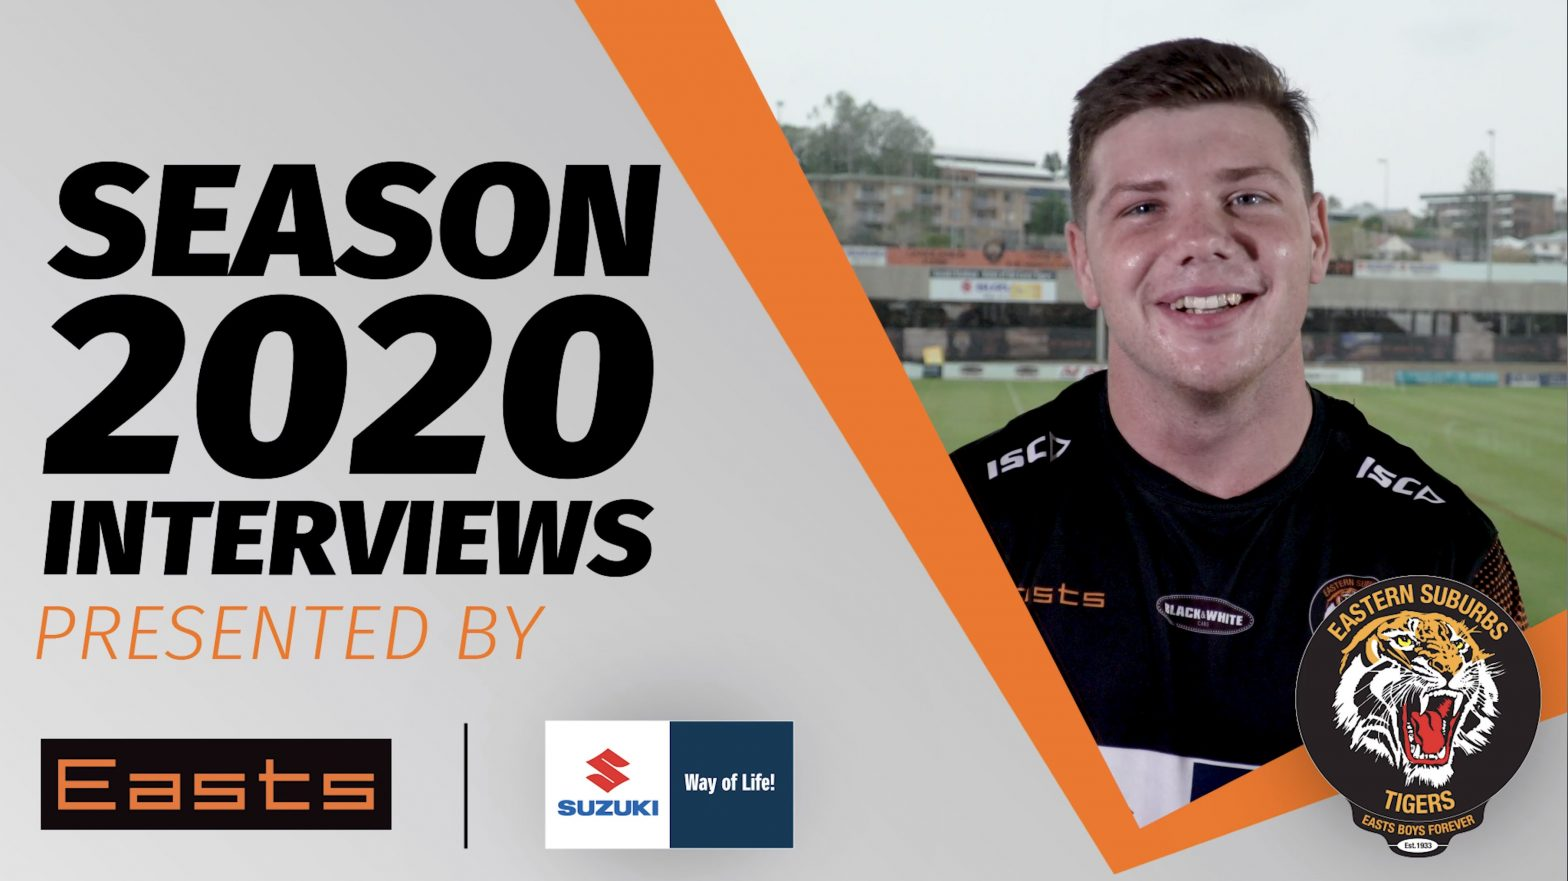 The ever cheeky Easts Tigers player, Heath Wilson, drops into TigerTV to chat about his surgery, his preseason workouts, and being the headline star of the Tigers.